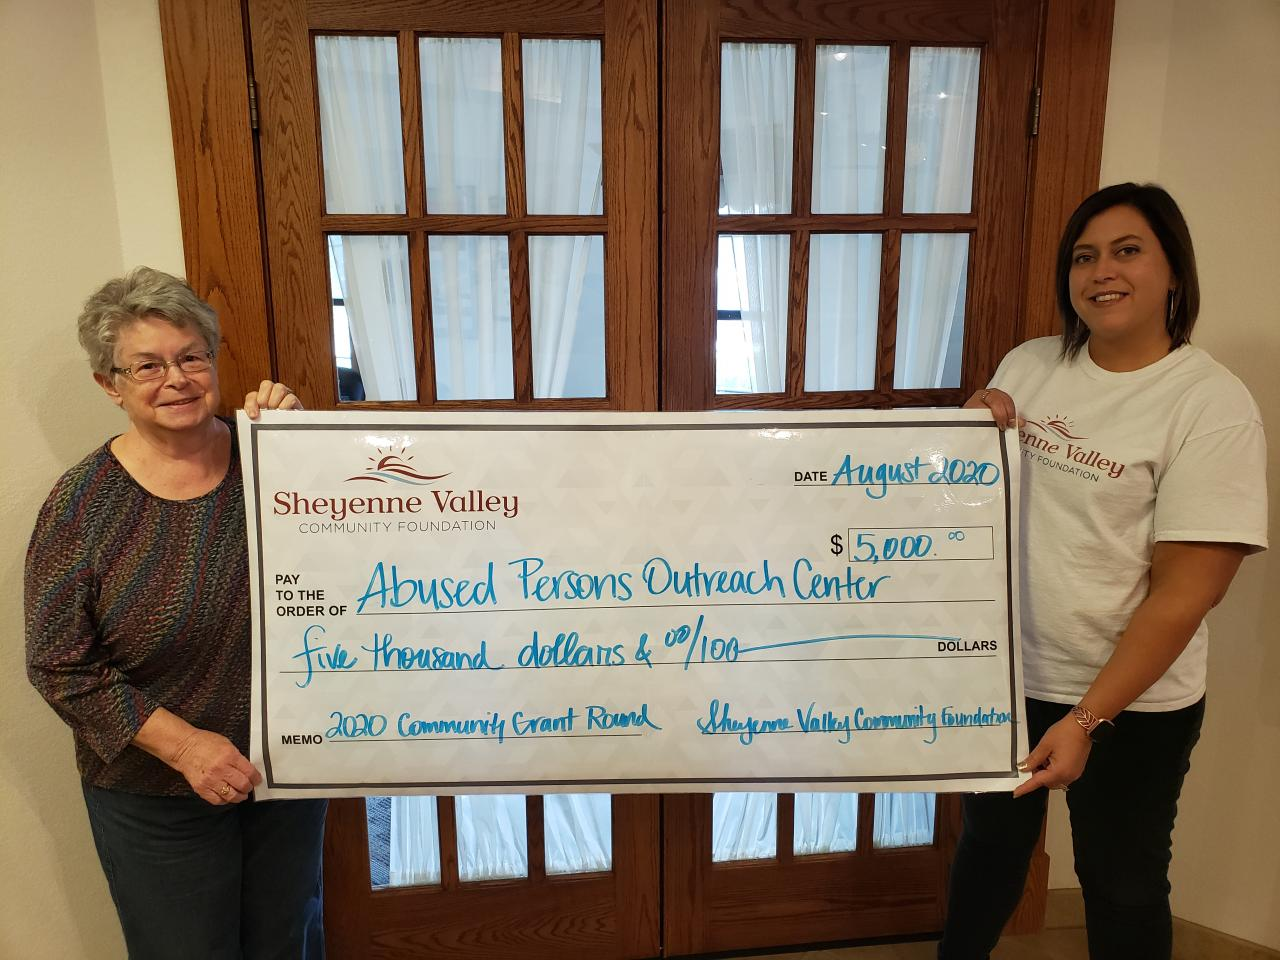 2020 Community Grant Round Recipients Part 3 of 3